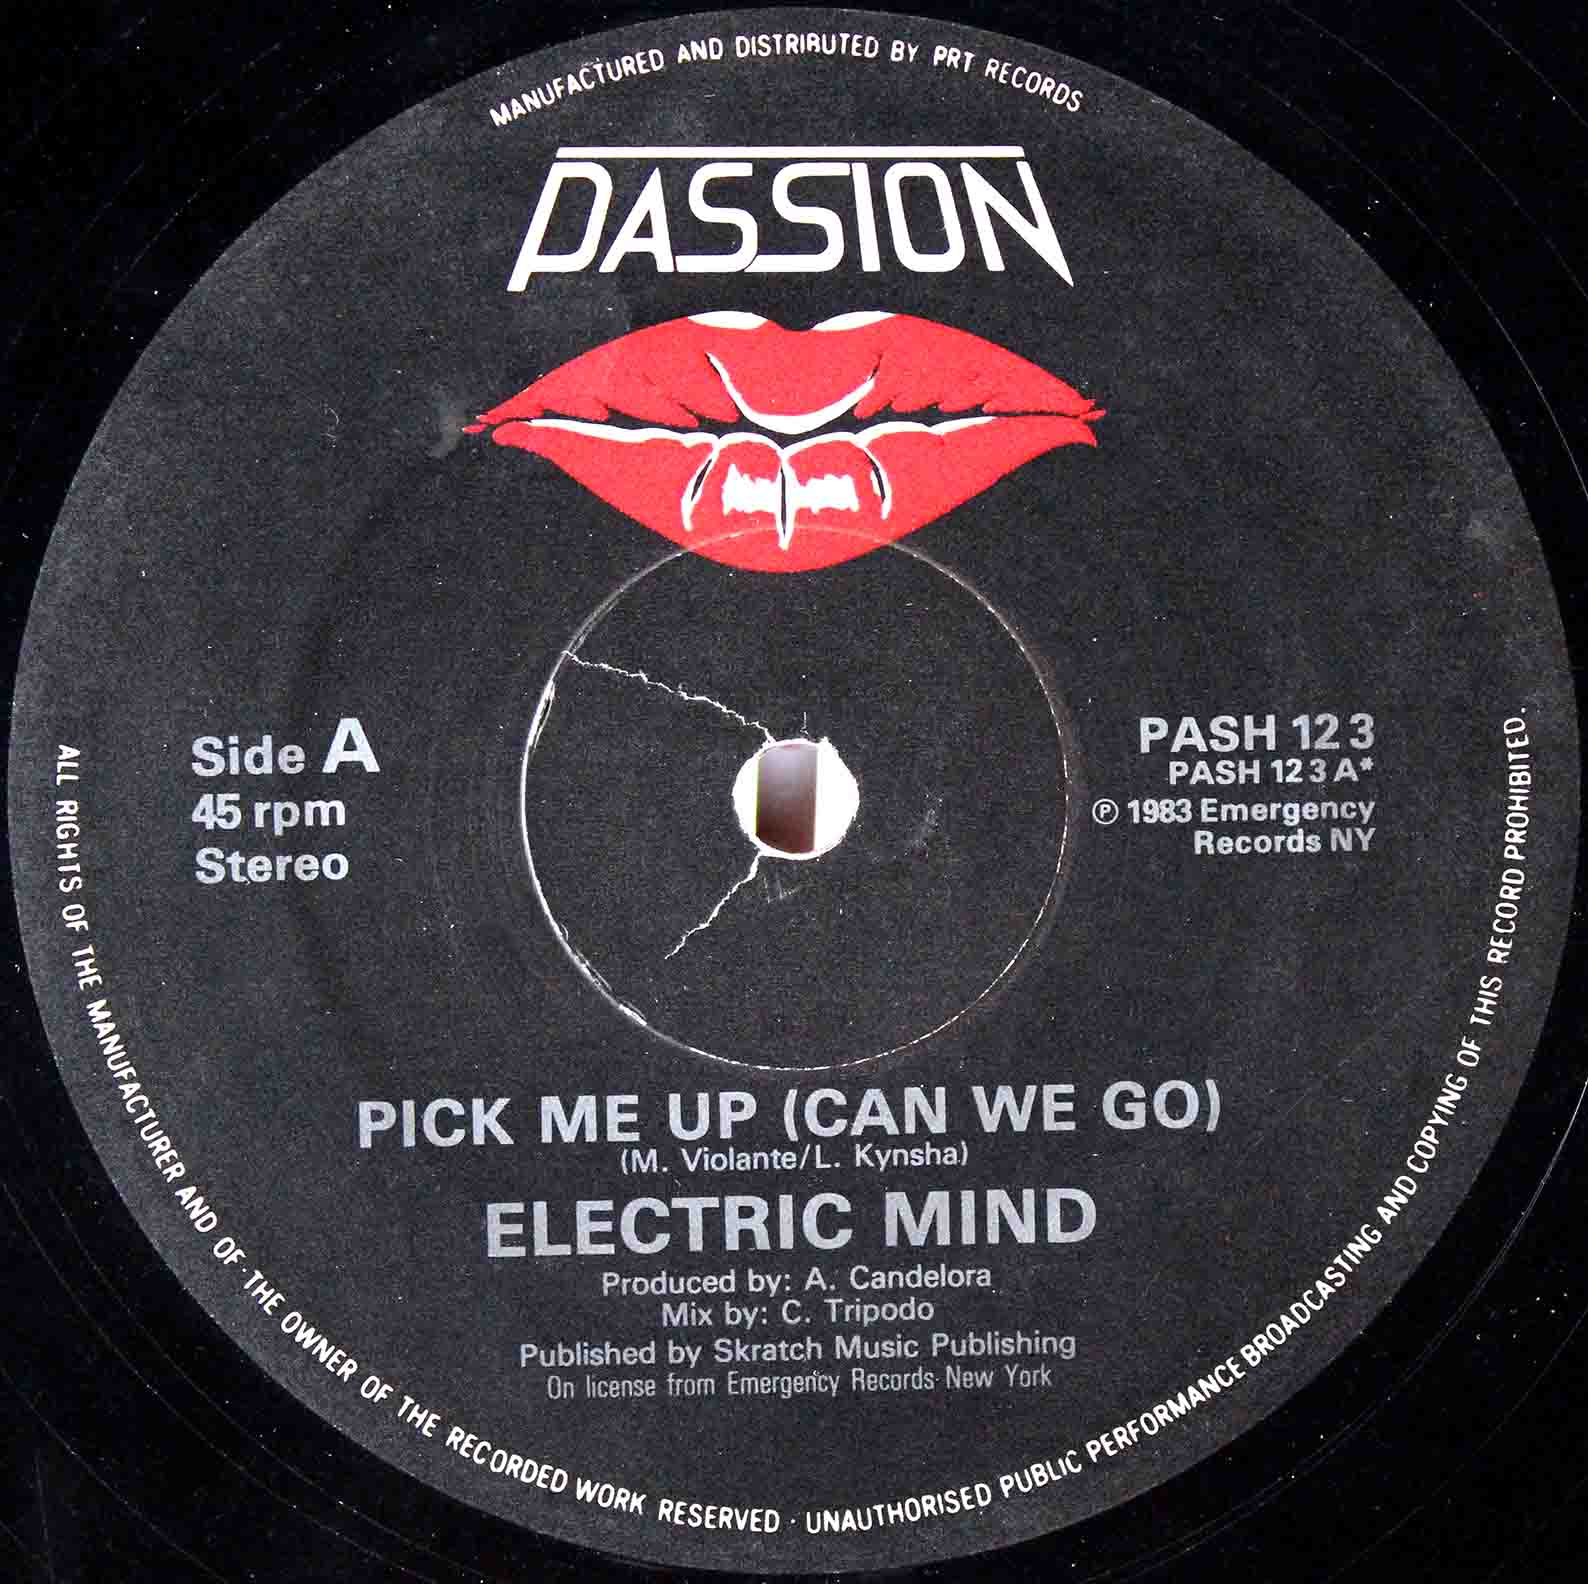 Electric Mind (1983) - Pick Me Up 08